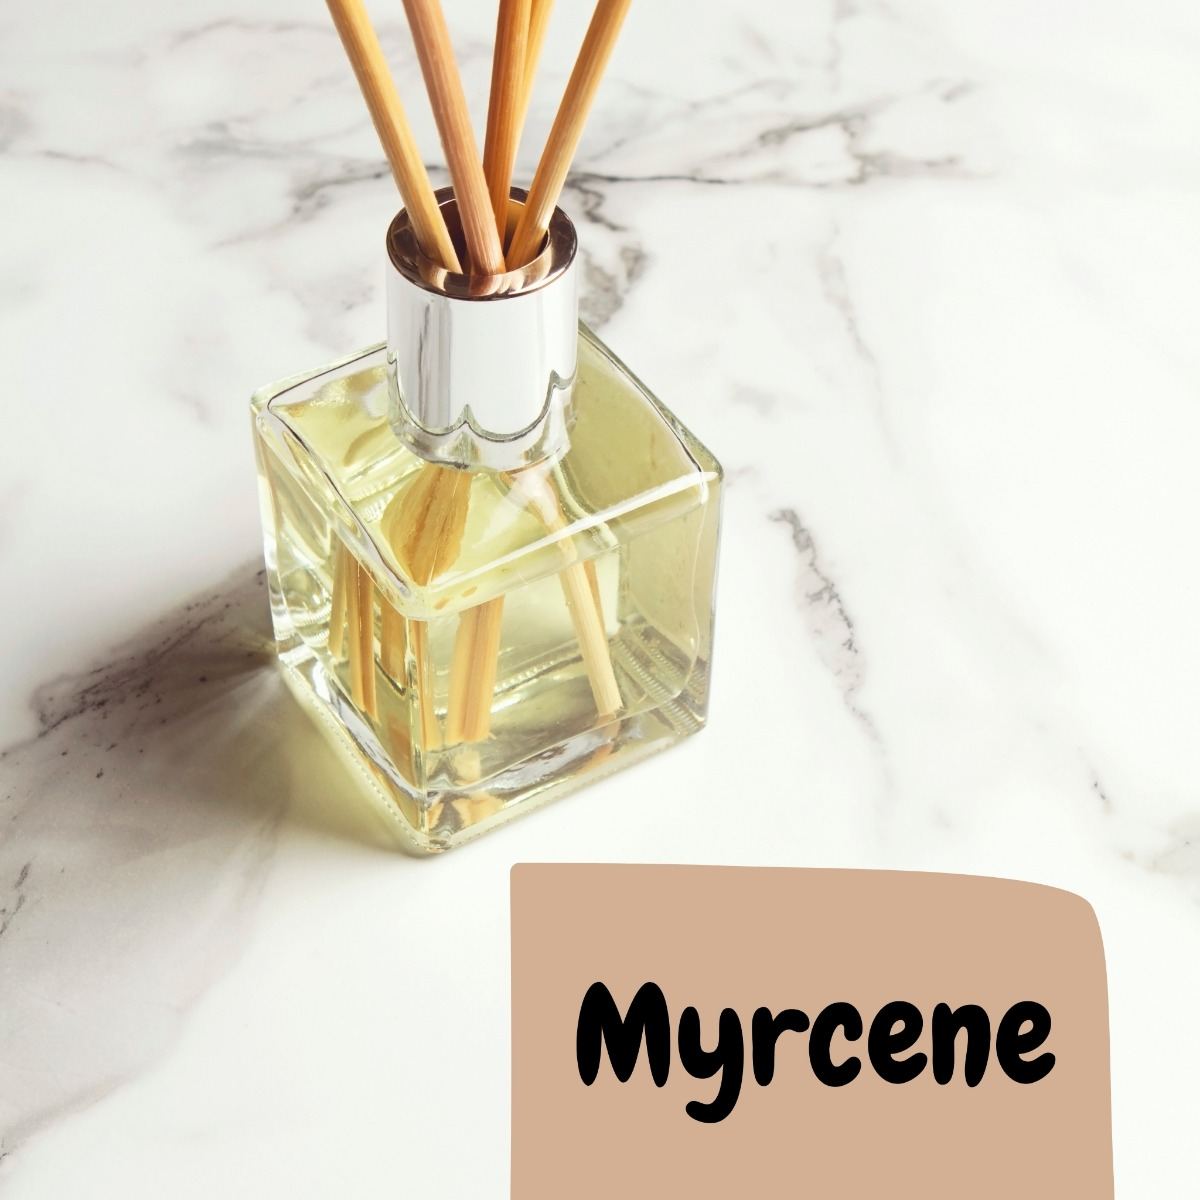 oil sense in the room vibe with text saying Myrcene